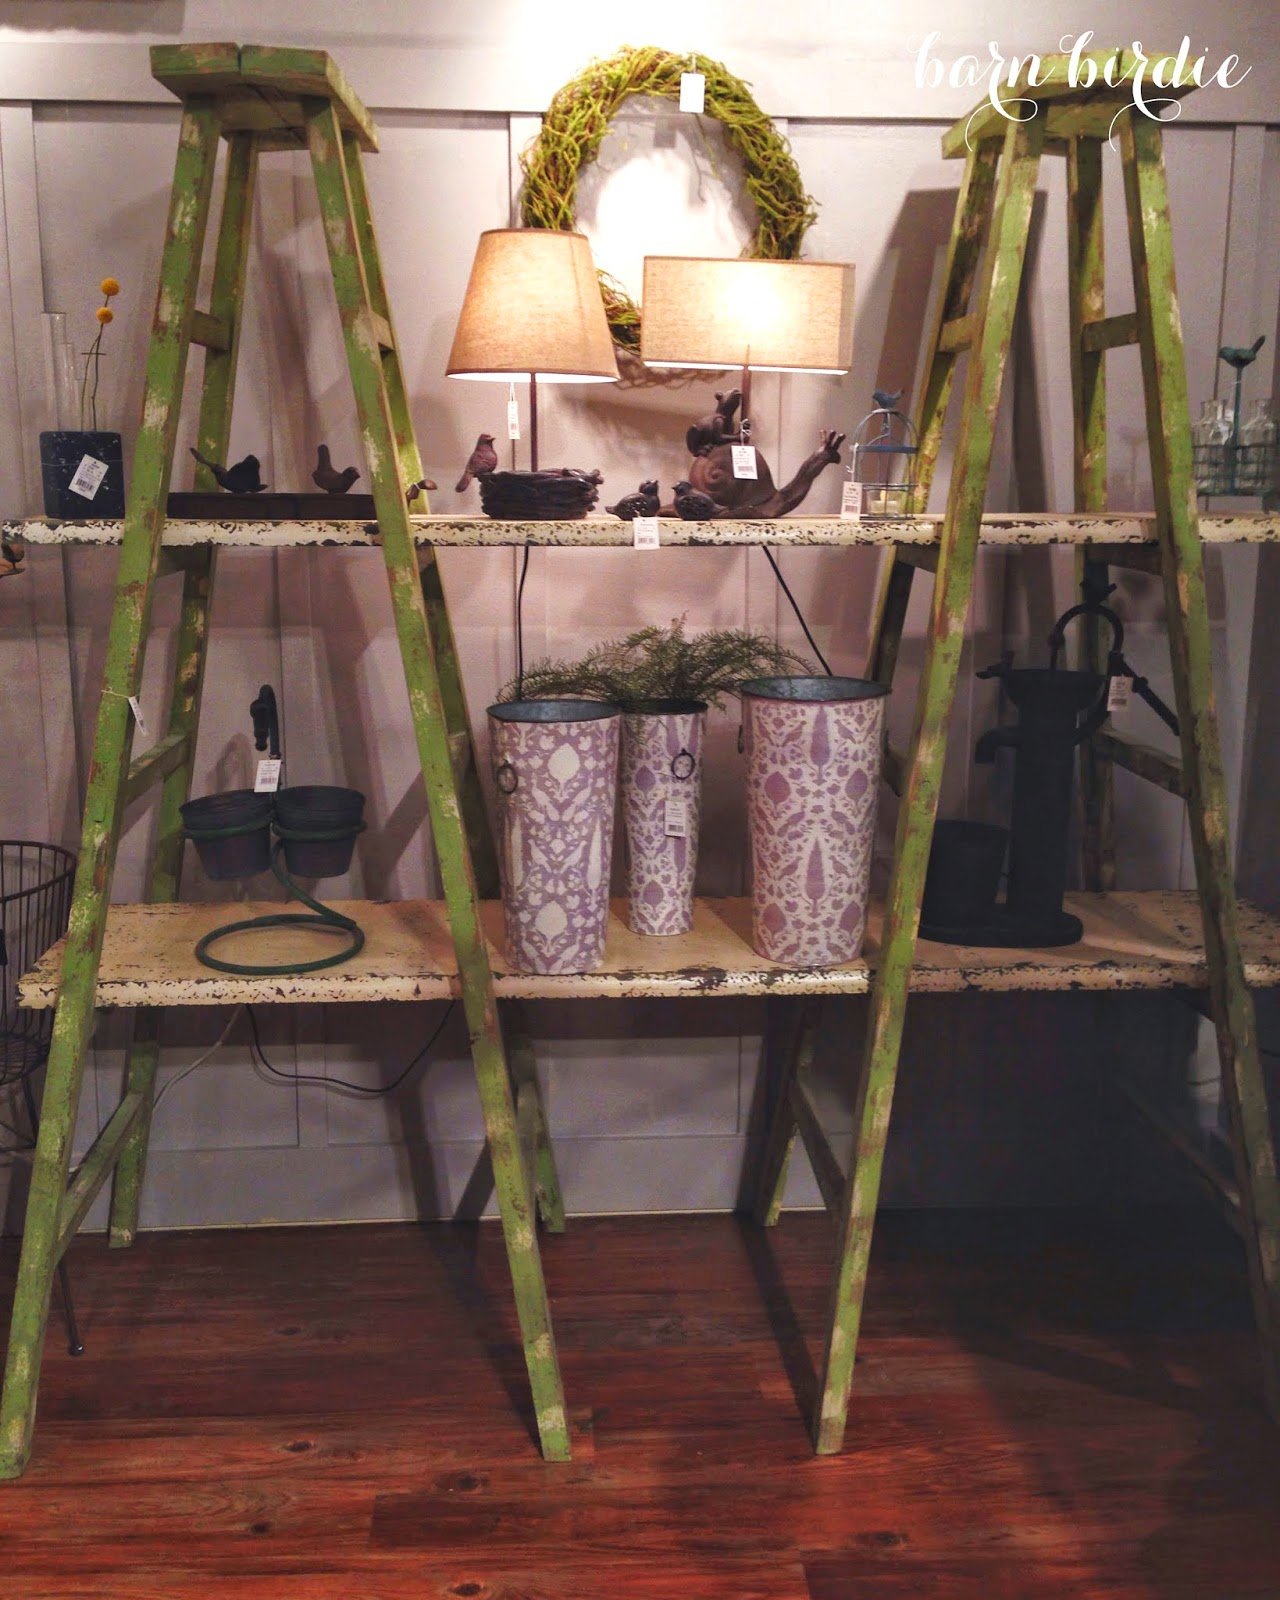 2015 Trends at the Atlanta Gift Show | Barn Birdie